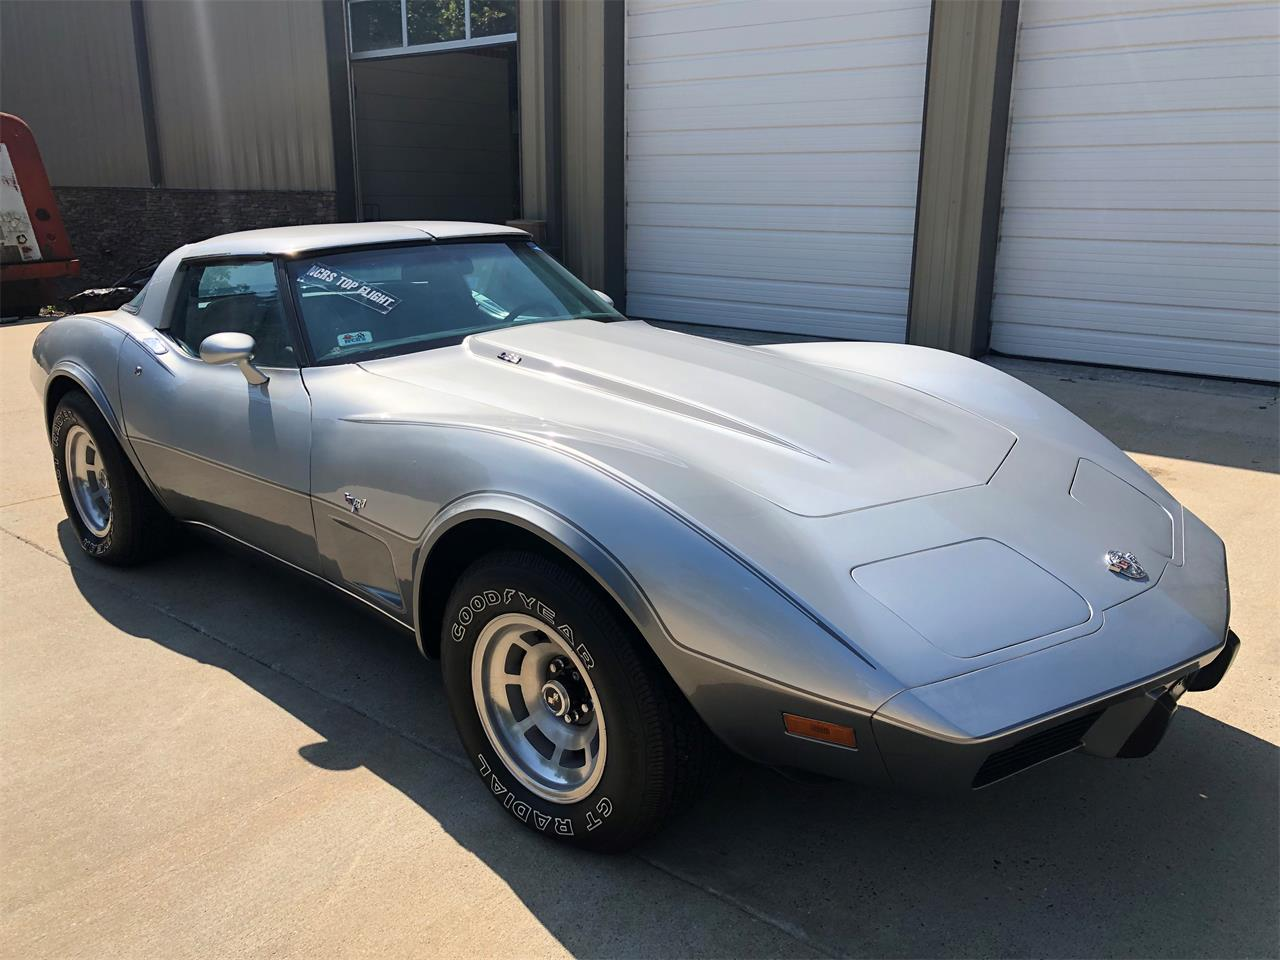 1978 Chevrolet Corvette (CC-1303137) for sale in Scottsdale, Arizona